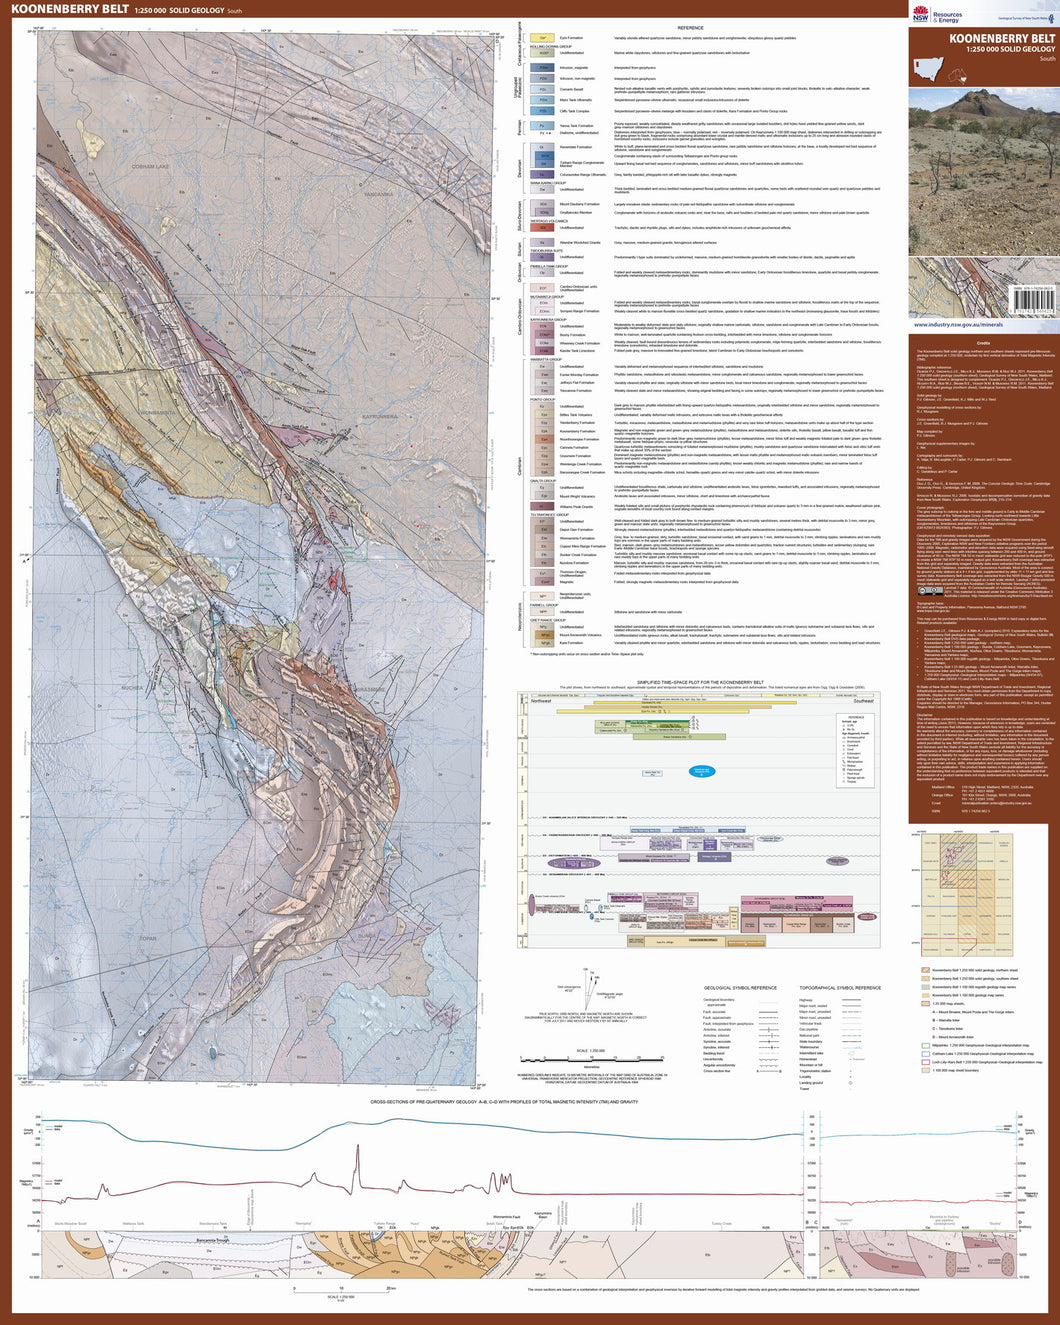 Image of Koonenberry Belt 1:250000 Solid Geology South  map